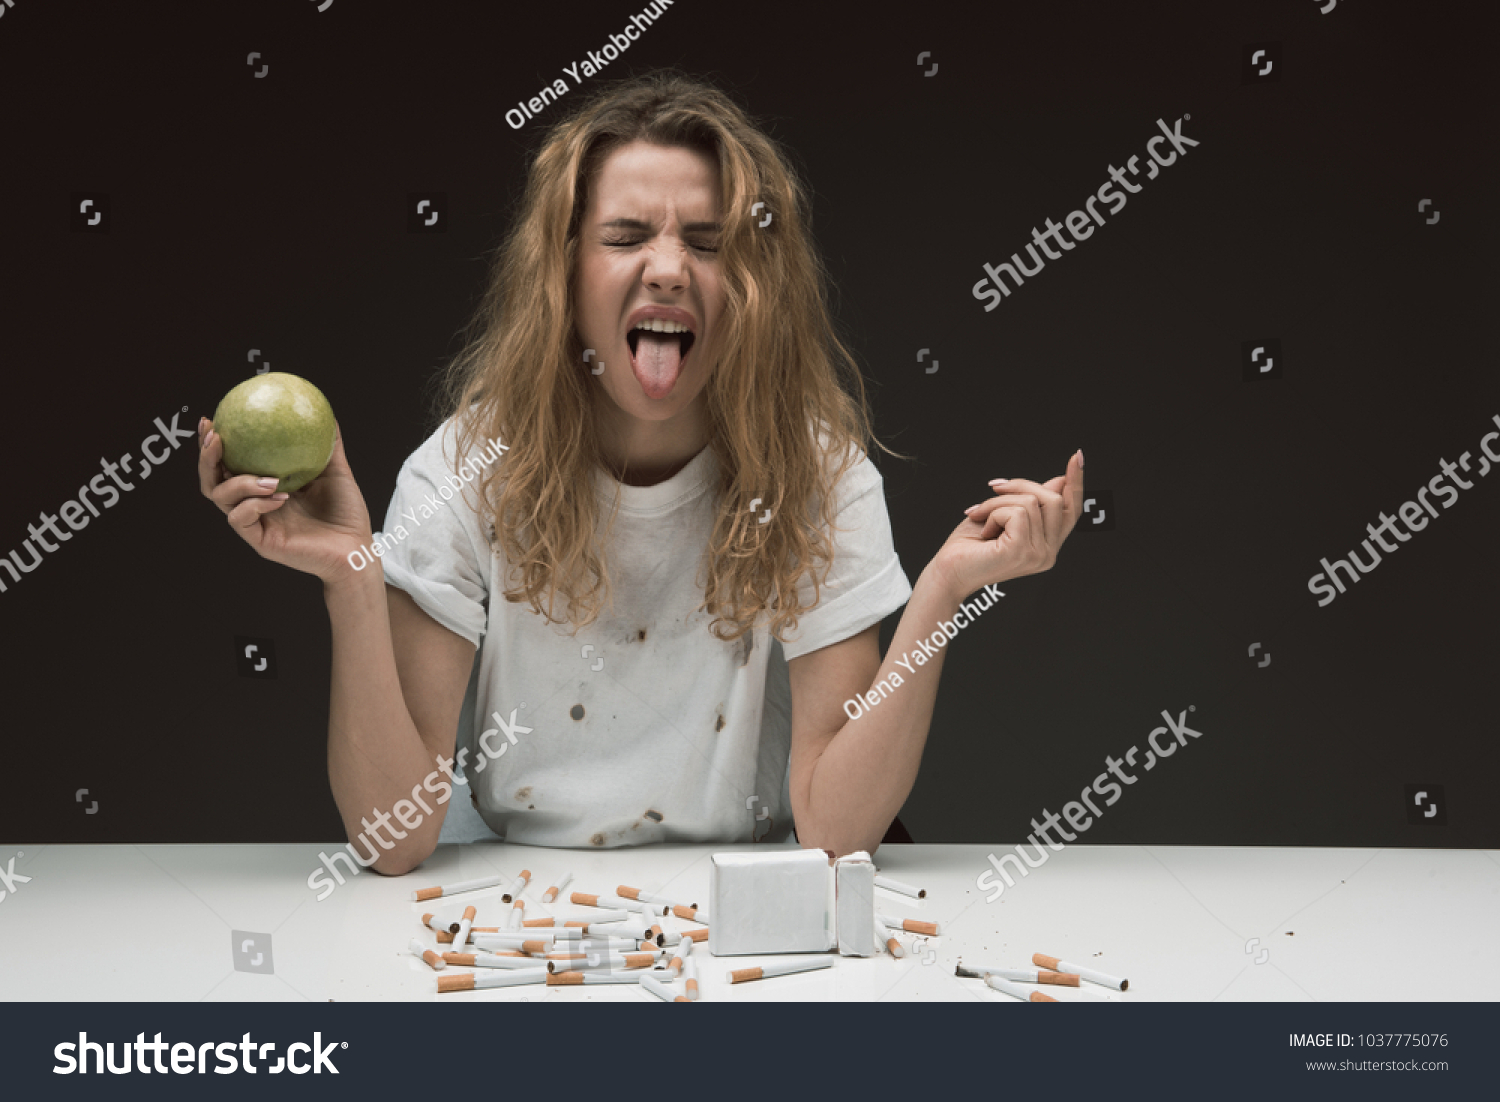 Waist up portrait of stressed blonde girl with apple making wry face in  disgust, cigarettes